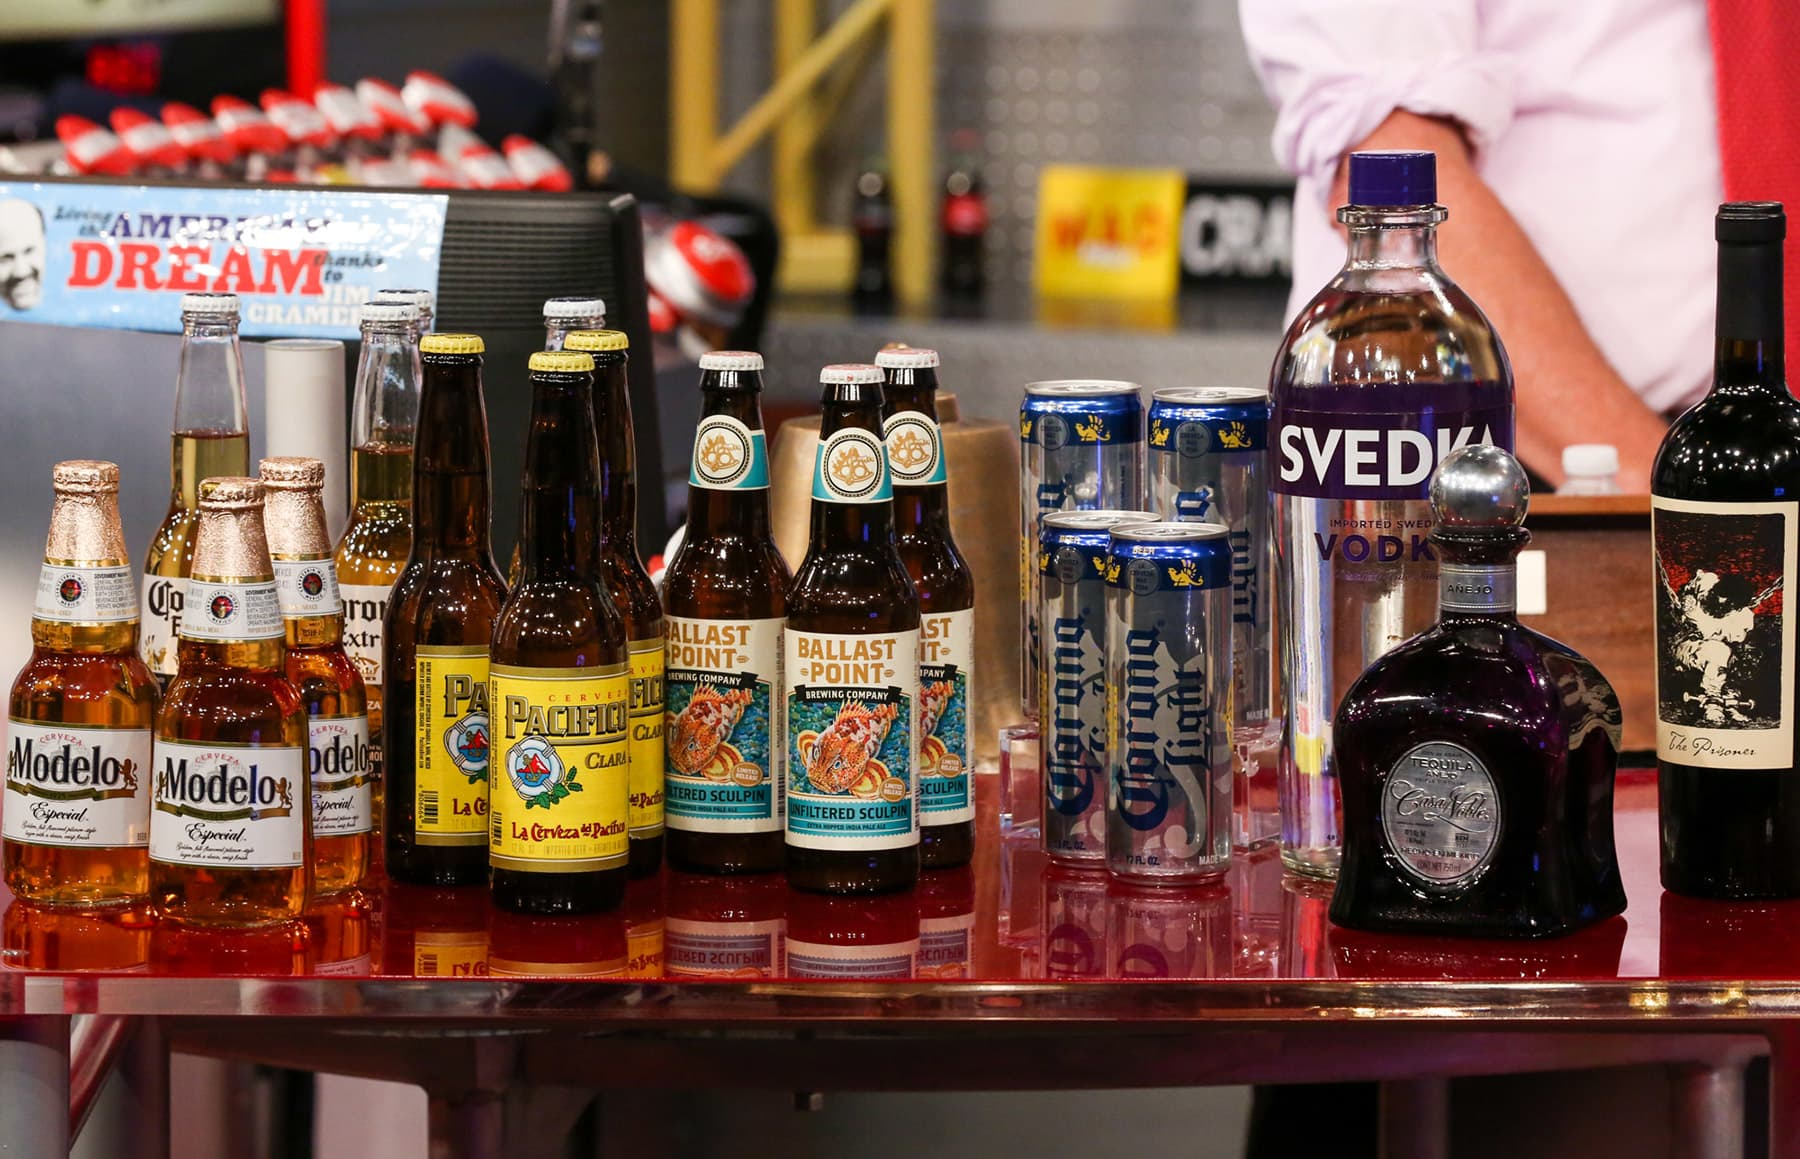 Millennials are drinking more because they're having kids, Constellation Brands executive says